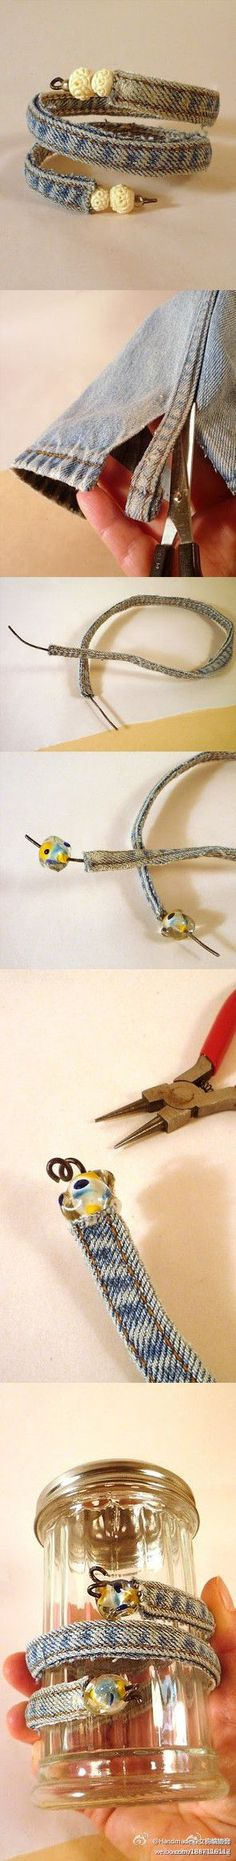 DIY recycled jeans bracelet  more!!